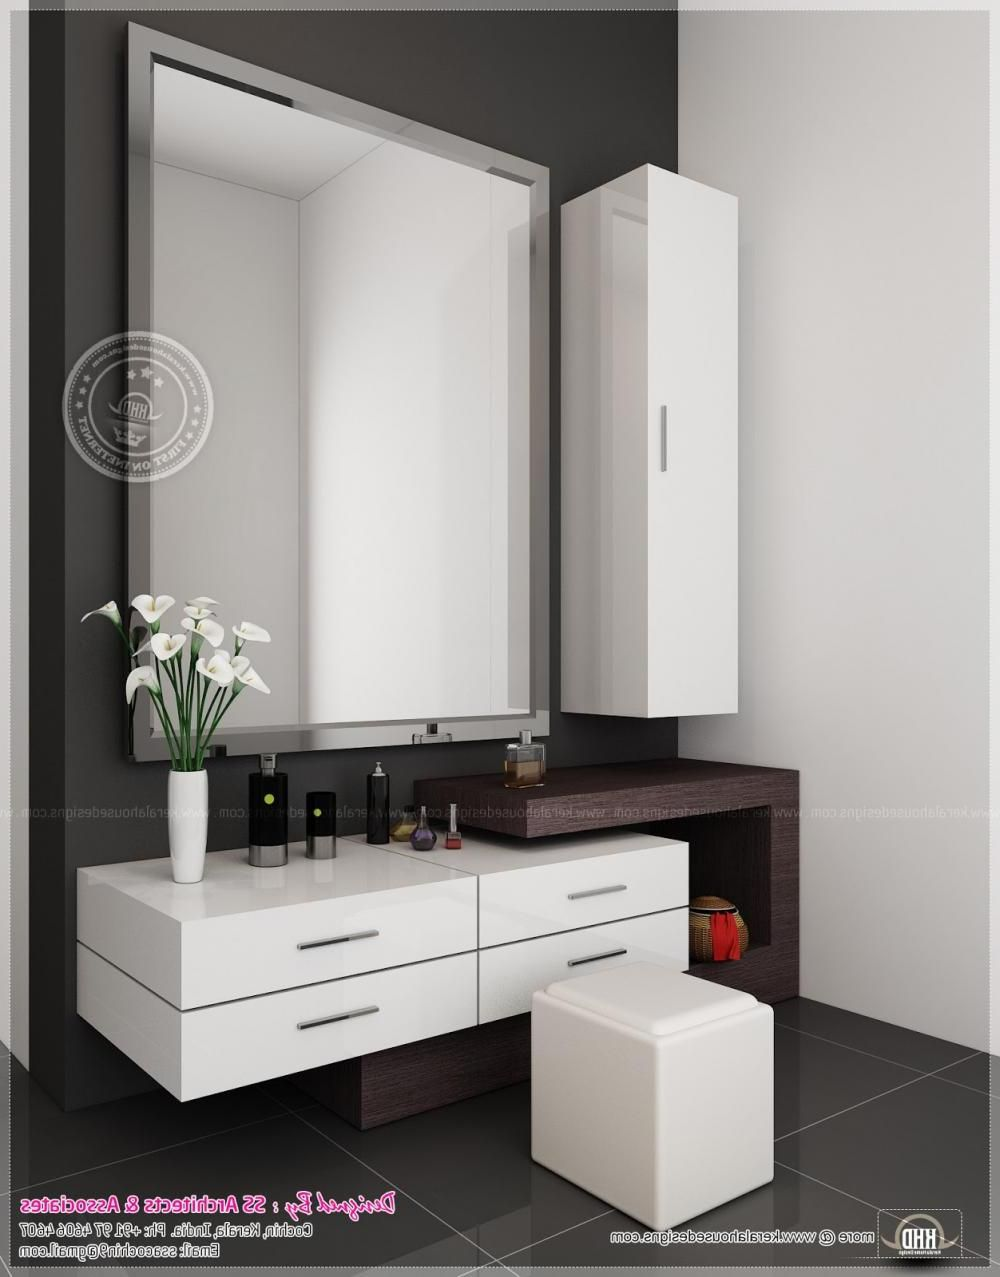 Bedroom Design, Dressing Table Minimalist And Modern: Latest Dressing Table  Design In Bedroom With Picture